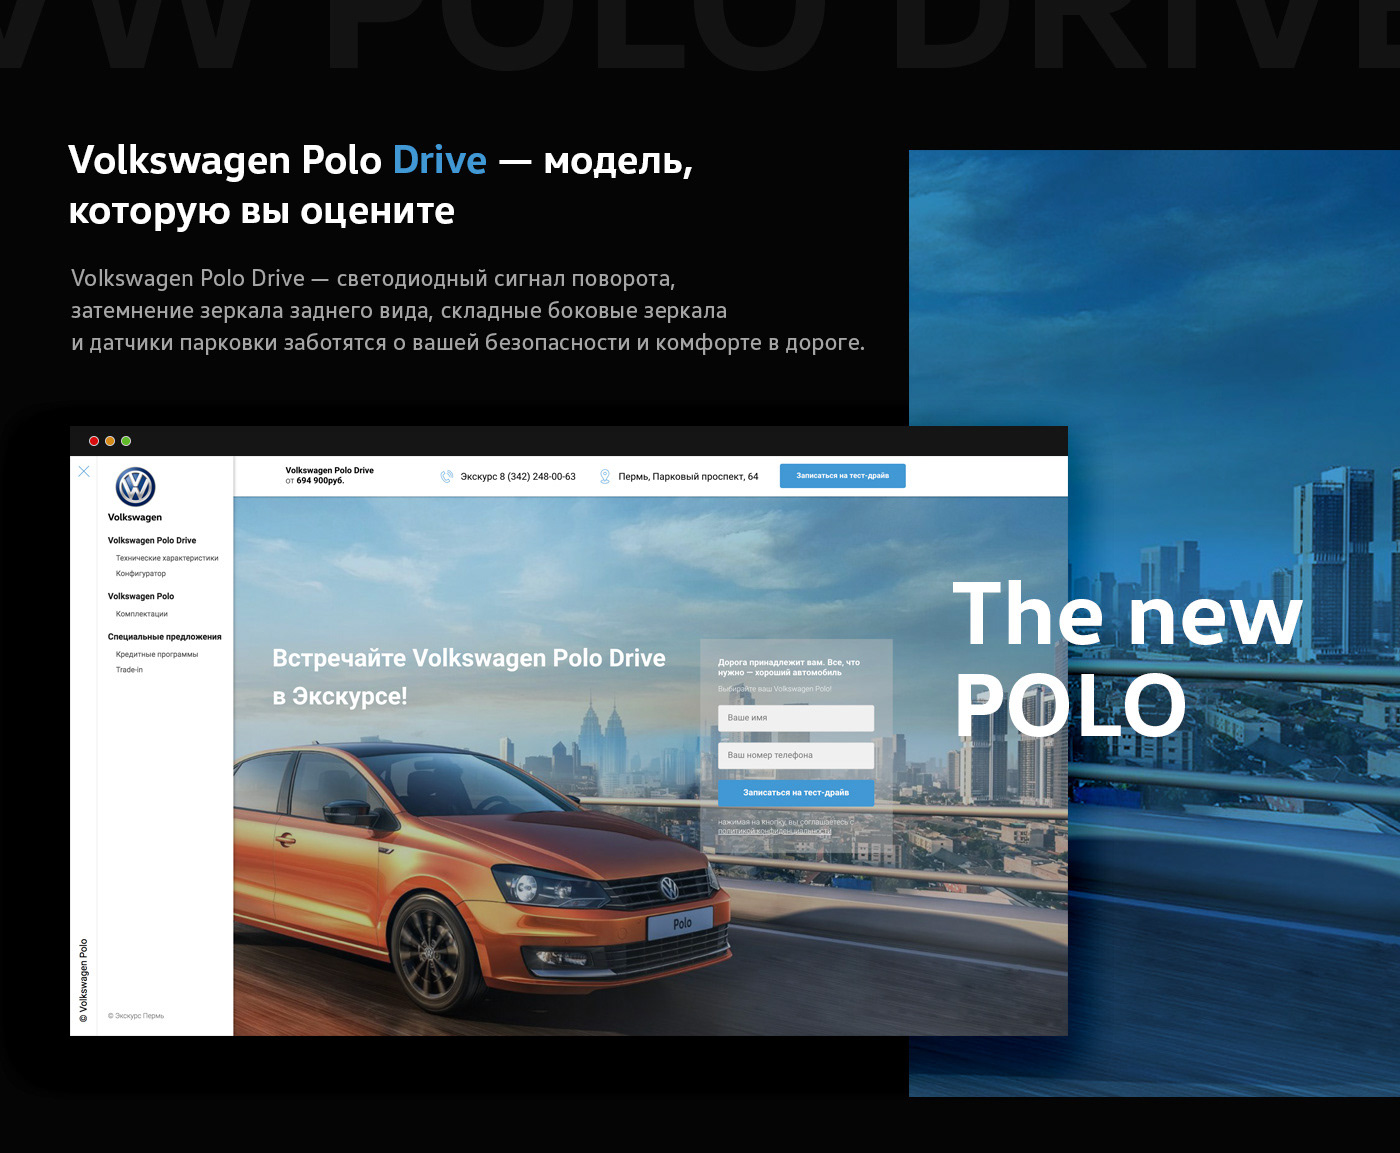 Polo Характеристики Volkswagen Polo Lp On Behance